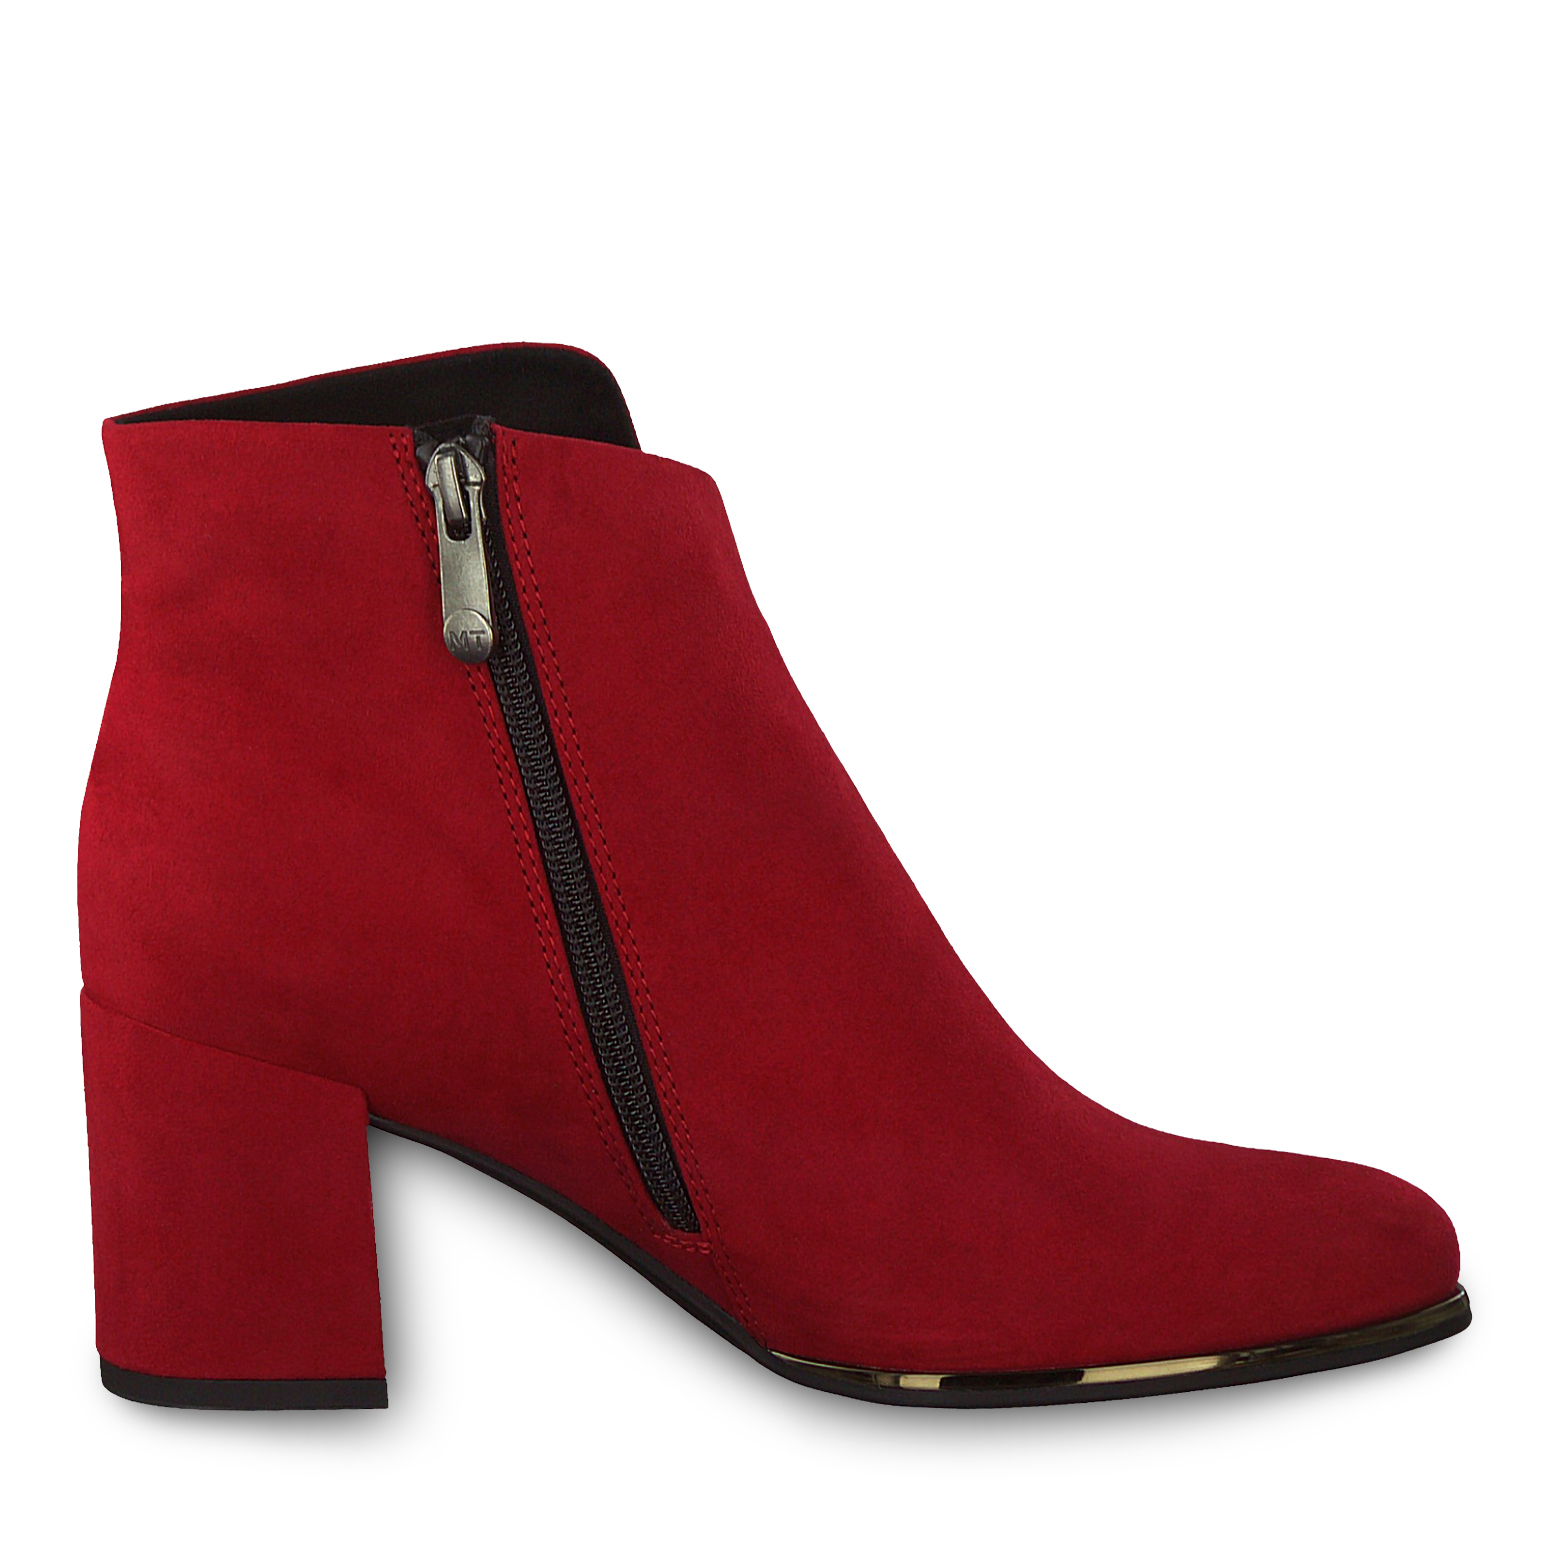 Stiefelette - rot, RED, hi-res